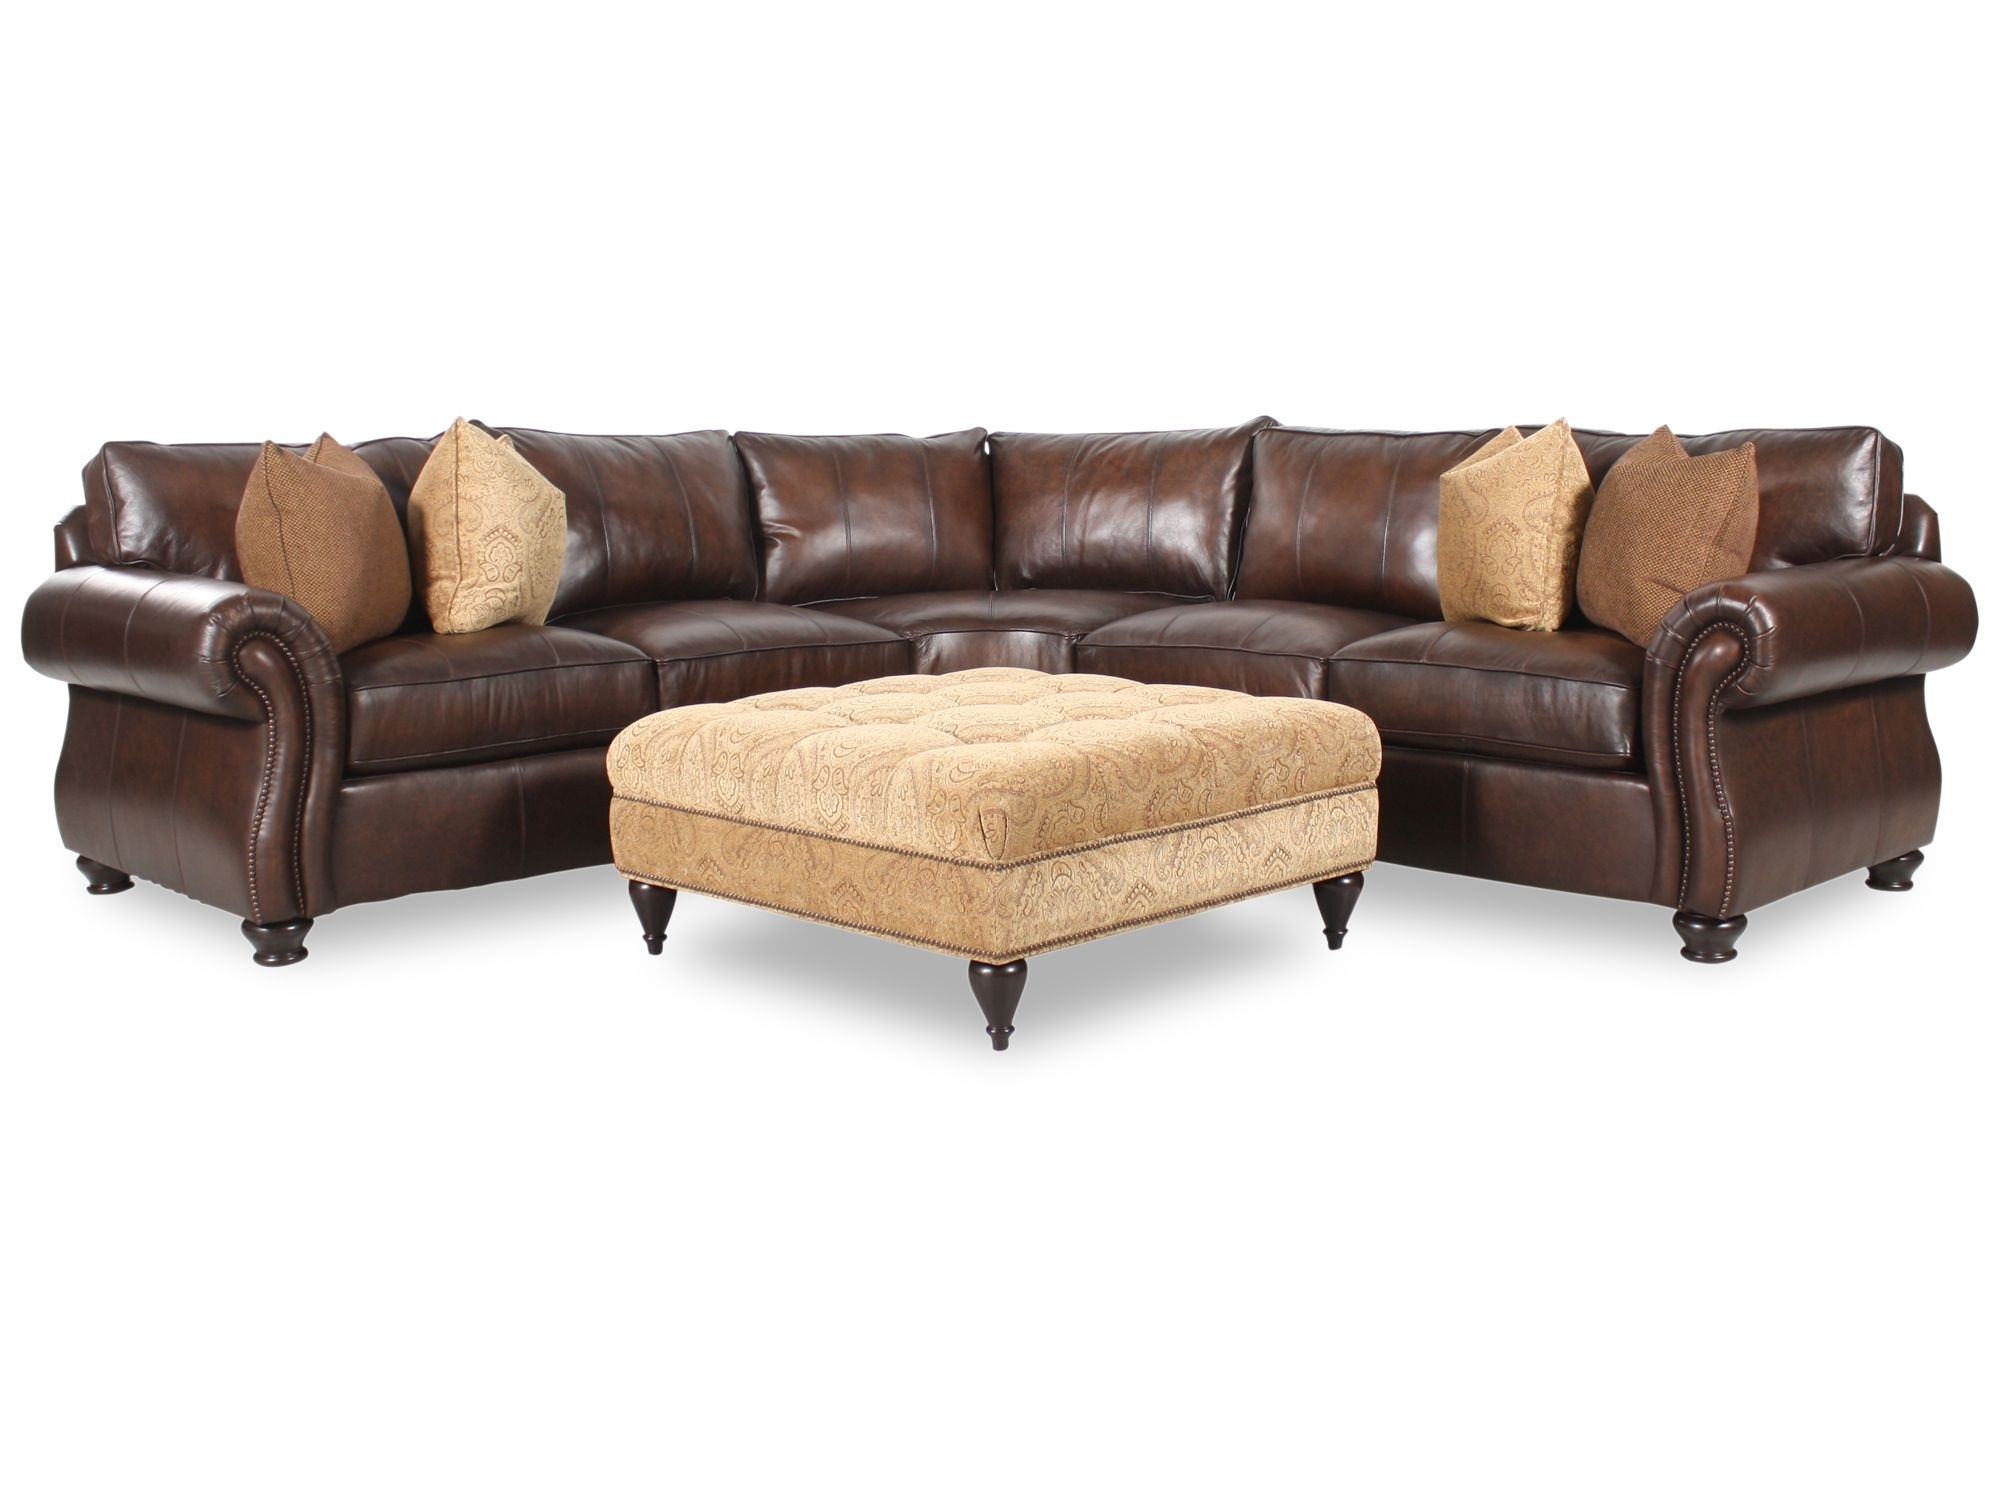 Bernhardt Van Gogh Two Piece Leather Sectional With Square Fabric Throughout Leather Sectional Sofas With Ottoman (Image 2 of 10)